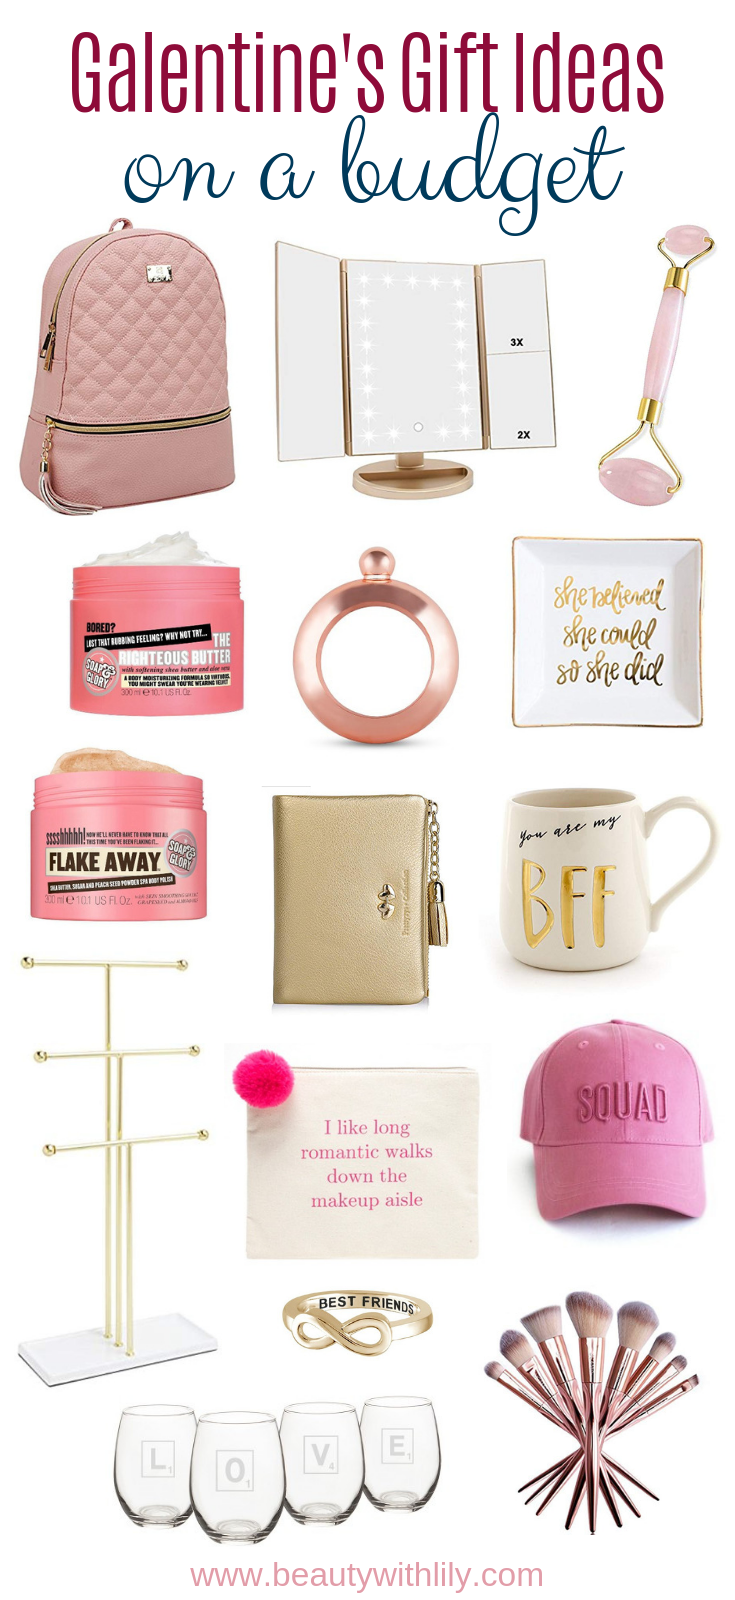 Affordable Galentine's Gift Ideas // Valentine's Day Gift Ideas For Her // Affordable Valentine's Day Gift Ideas // Gift Ideas For Her // Galentine's Day | Beauty With Lily | #valentinesday #giftsforher #galentinesday